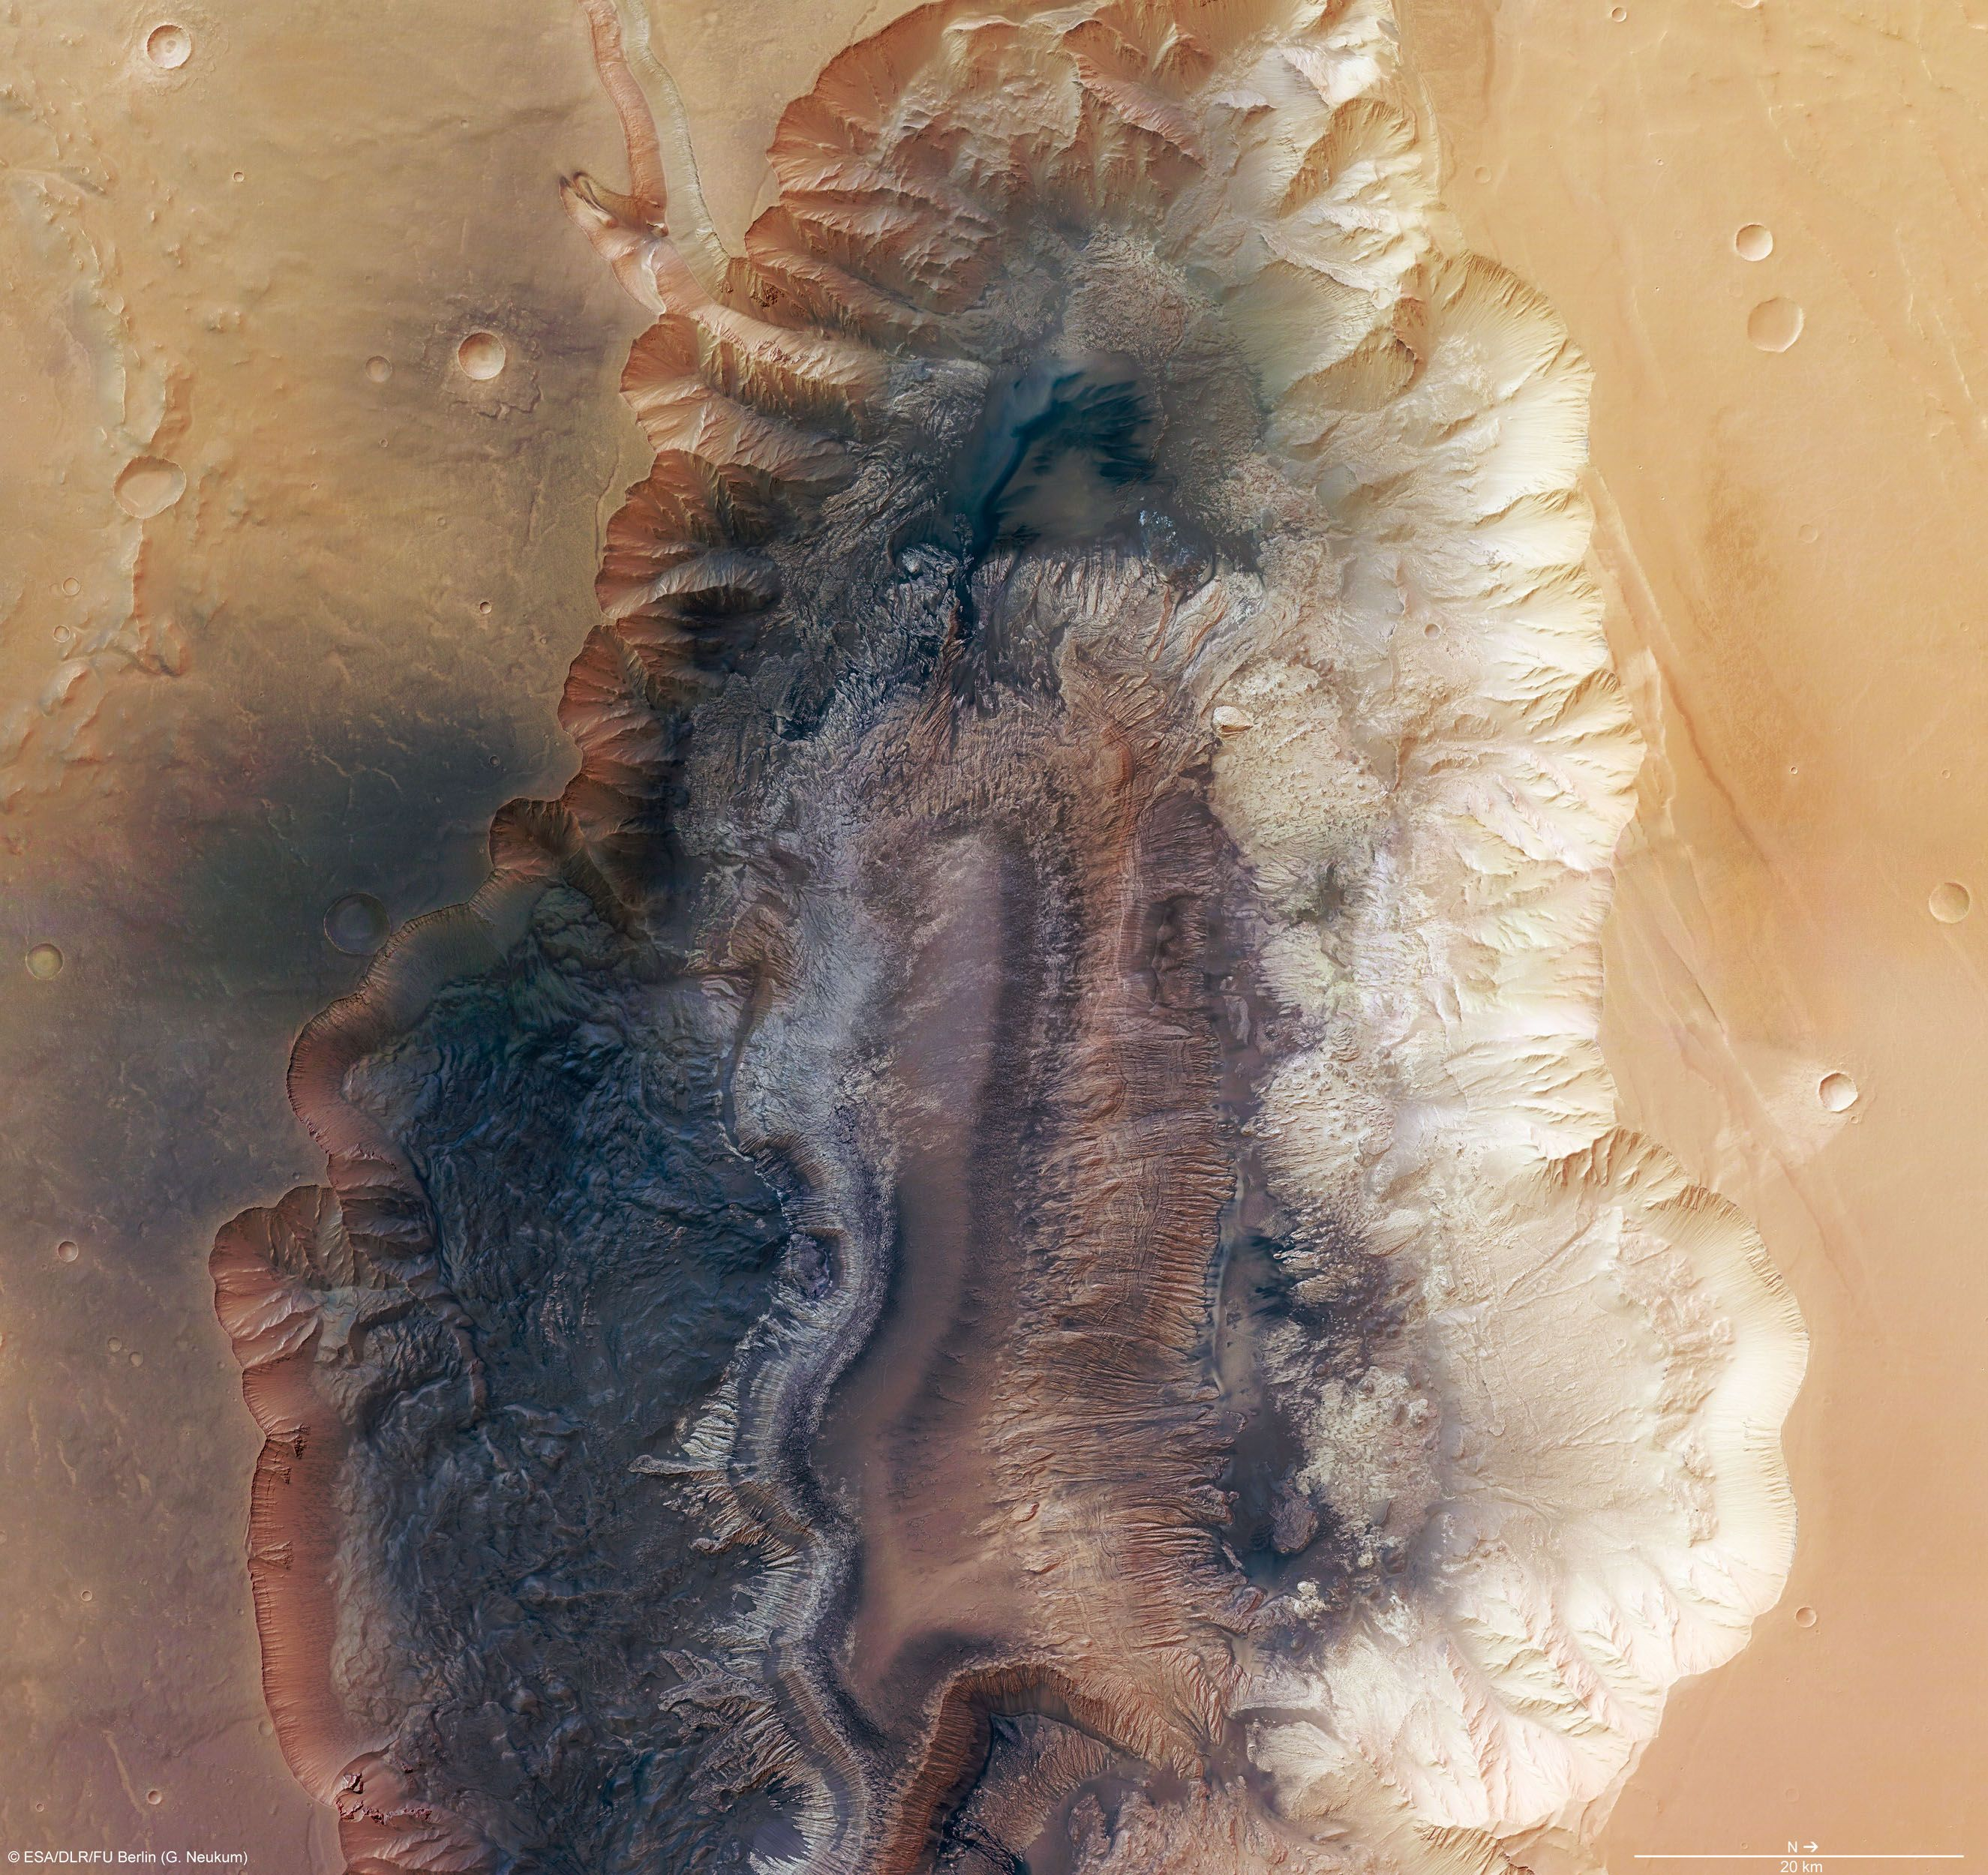 Ravine ,(01) (Hebes Chasma, Mars) - a dark vale, with hardly any light, full of pale, luminescent beings whose energy was deep and full but ultimately too delicate, a world of amber fire and pale moon